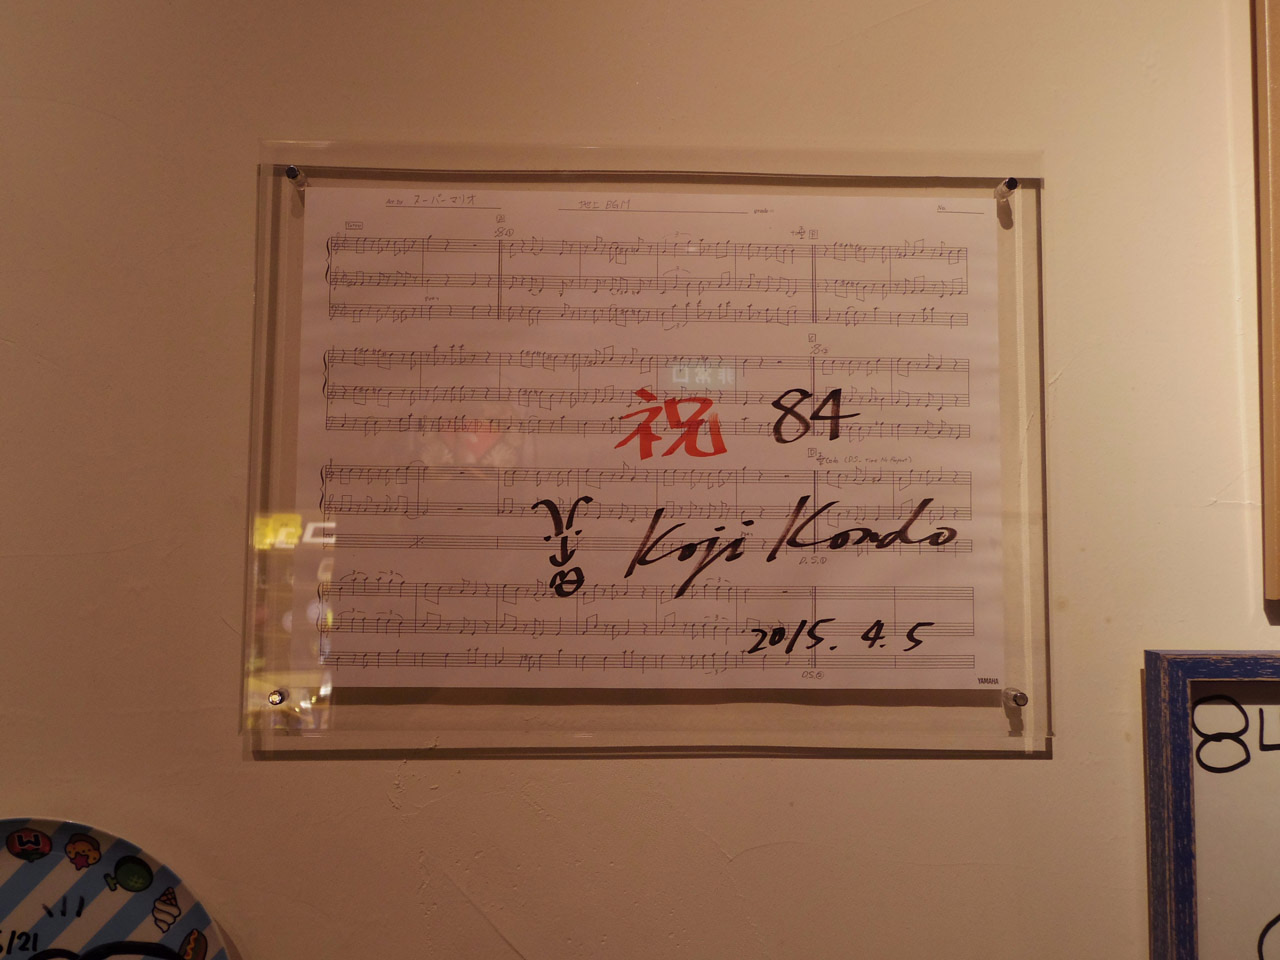 koji kondo autograph on sheet music